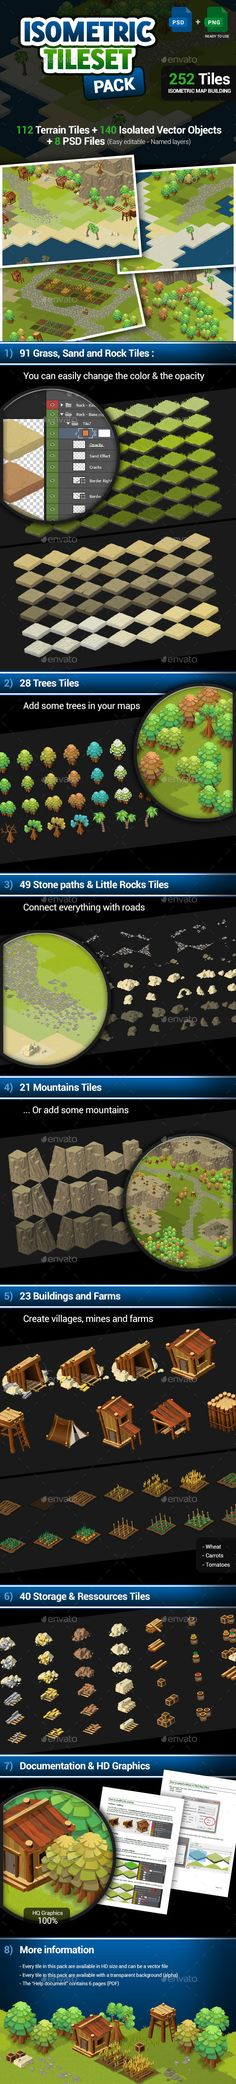 Isometric Tileset - Map Creation Pack - Tilesets Game Assets